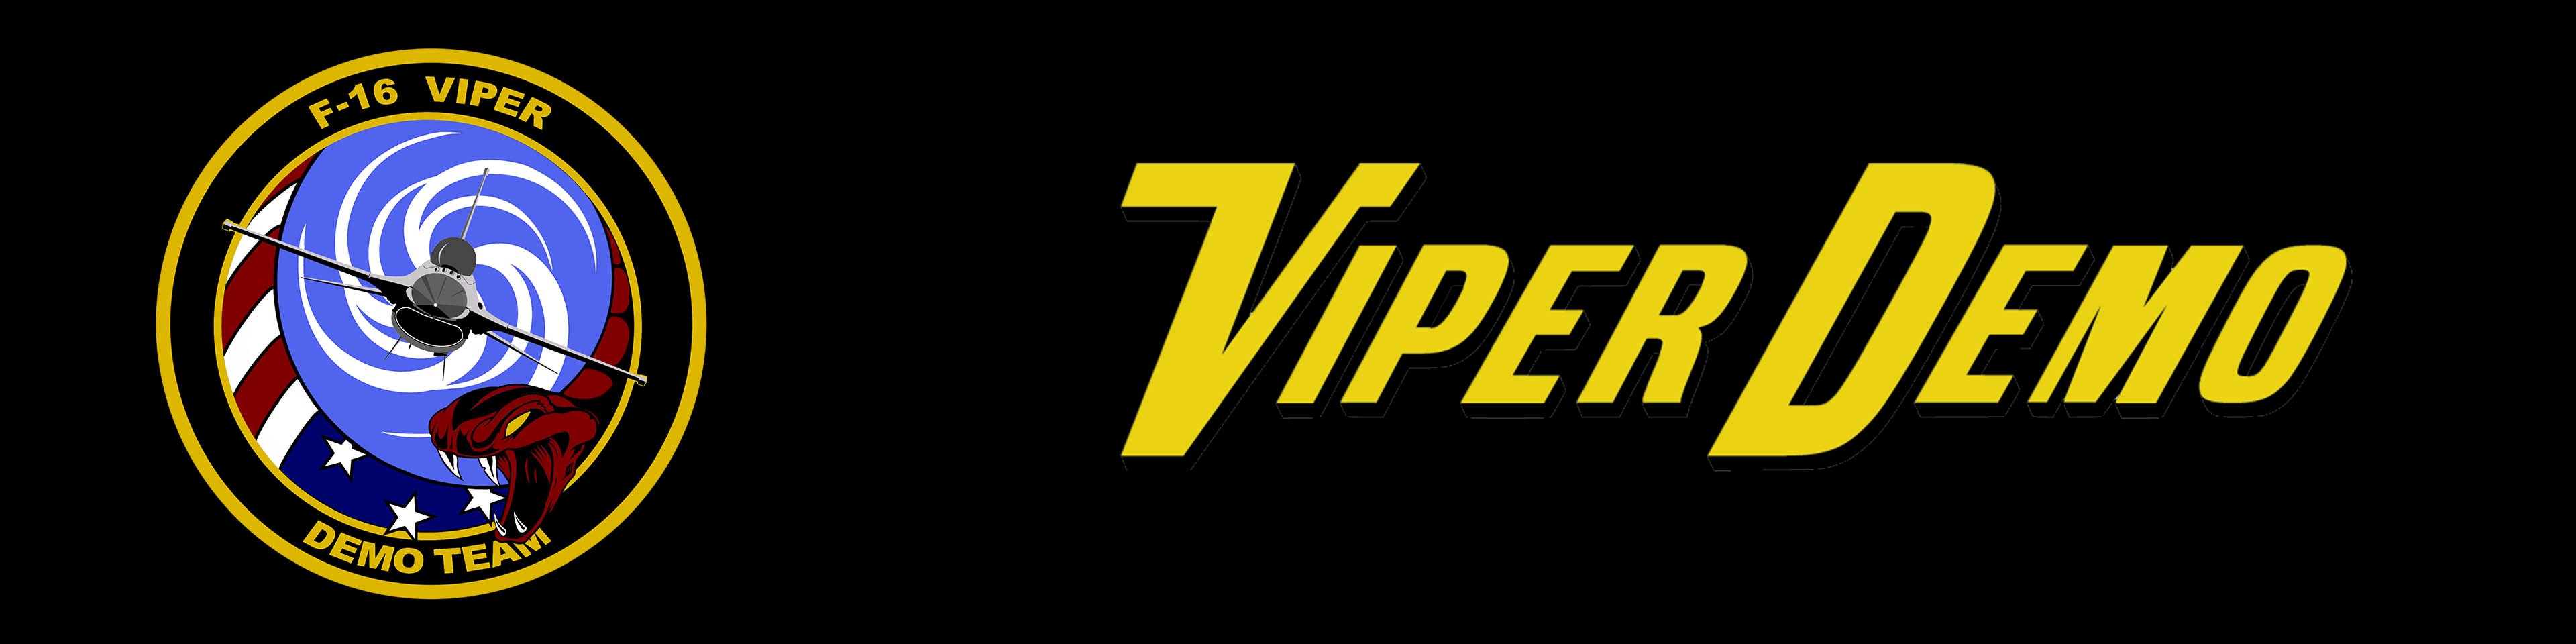 A graphic of the Viper Demo team logo.